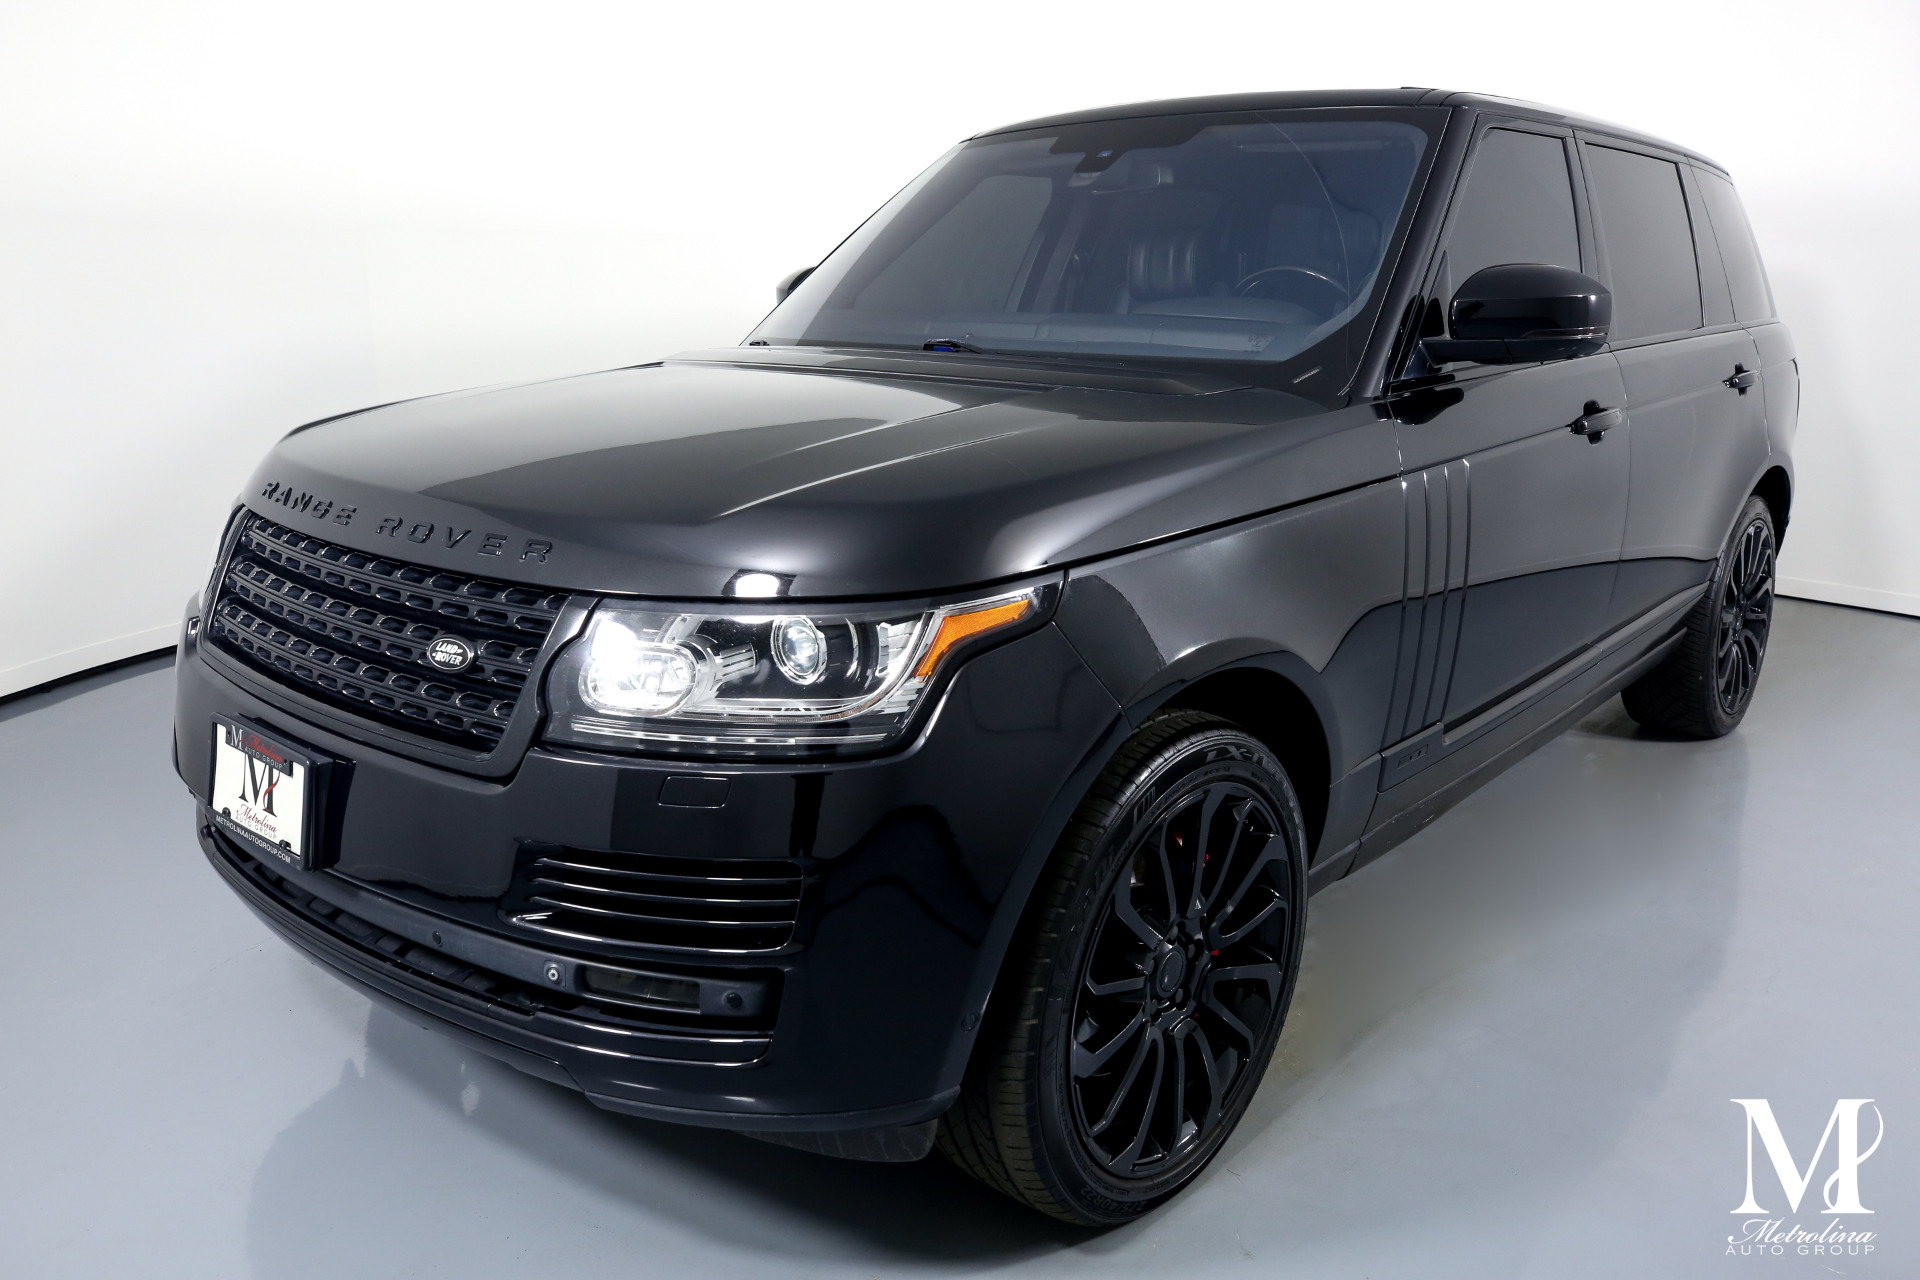 Used 2015 Land Rover Range Rover Autobiography LWB for sale $49,996 at Metrolina Auto Group in Charlotte NC 28217 - 4